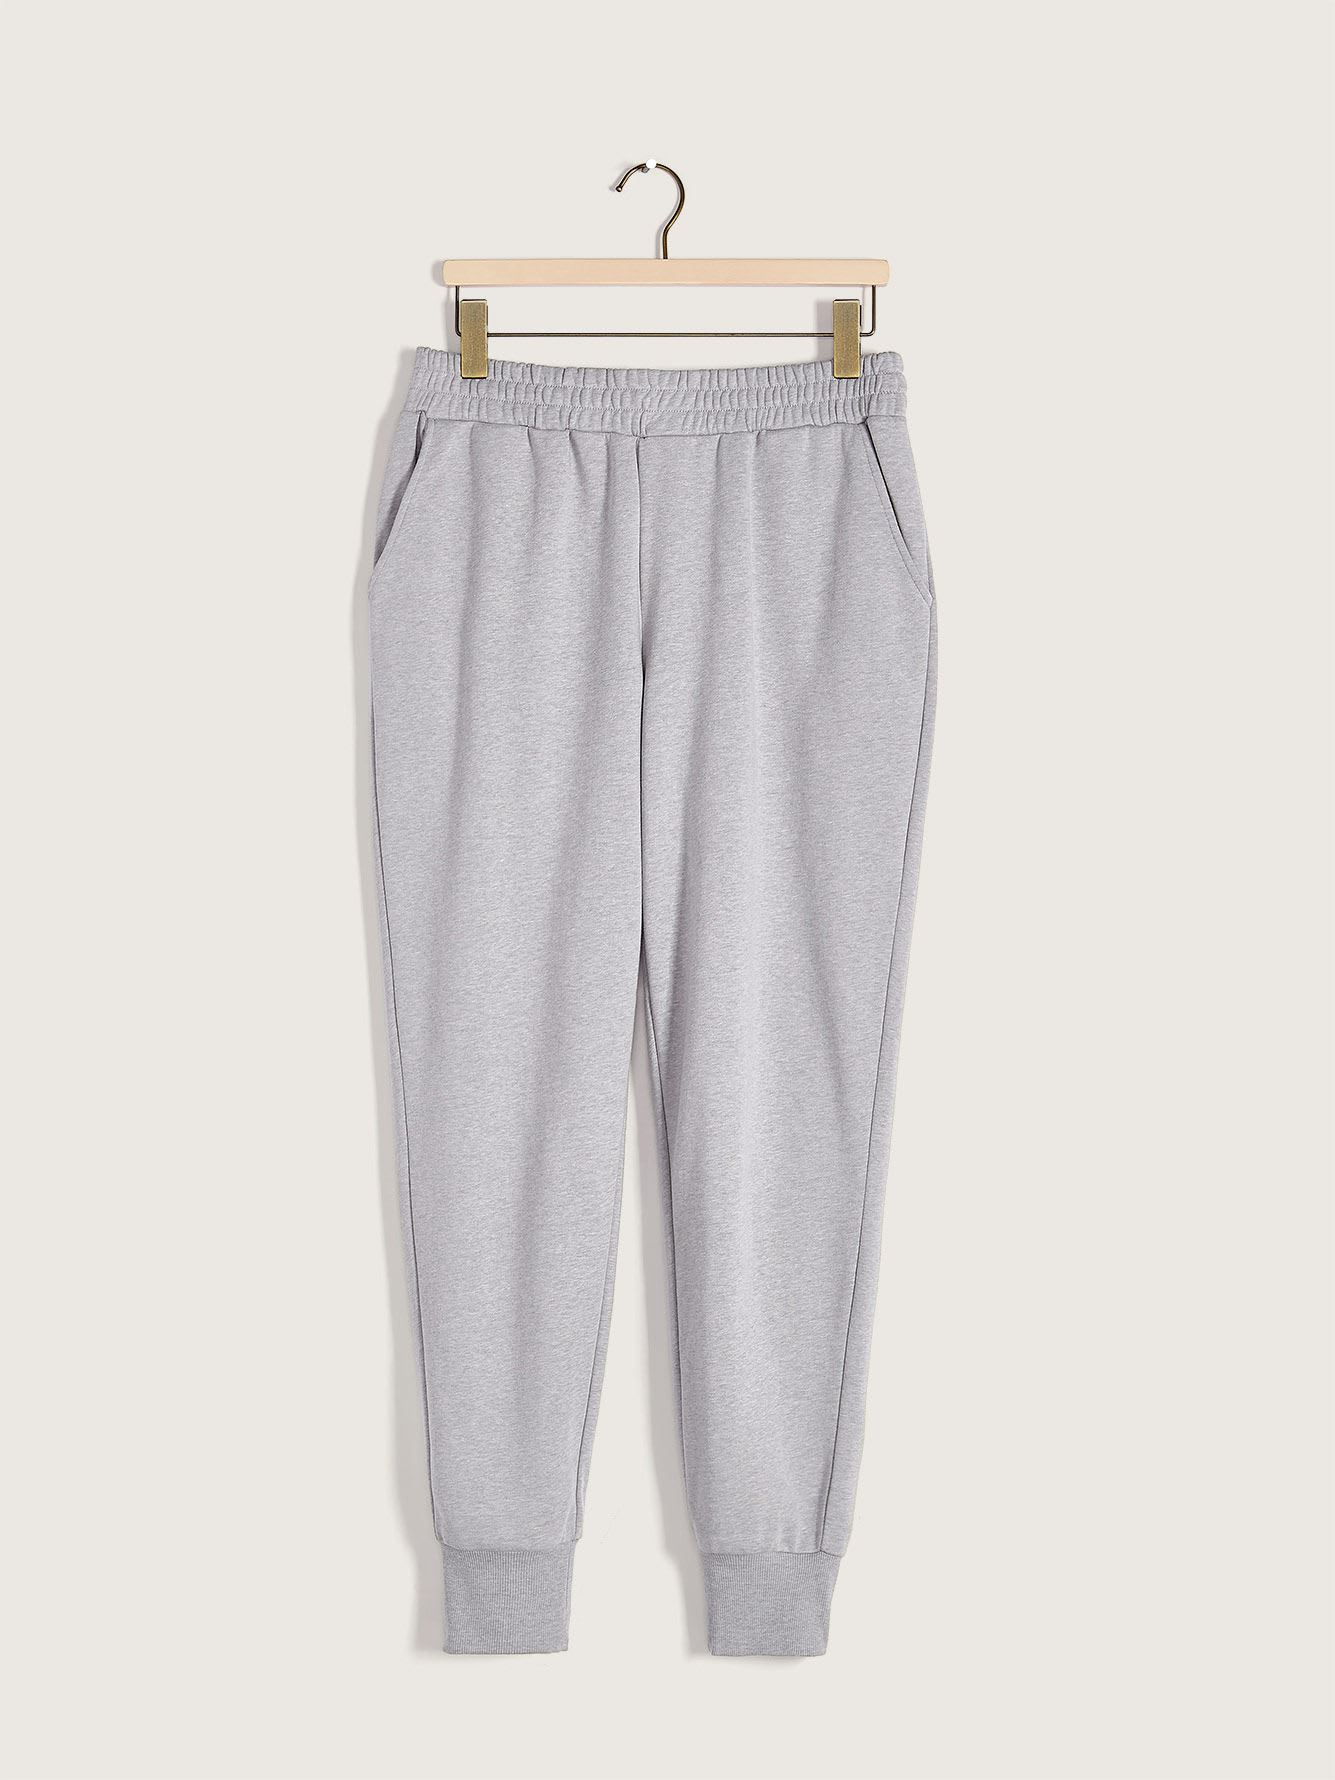 French Terry Sweatpants with Pockets - Addition Elle